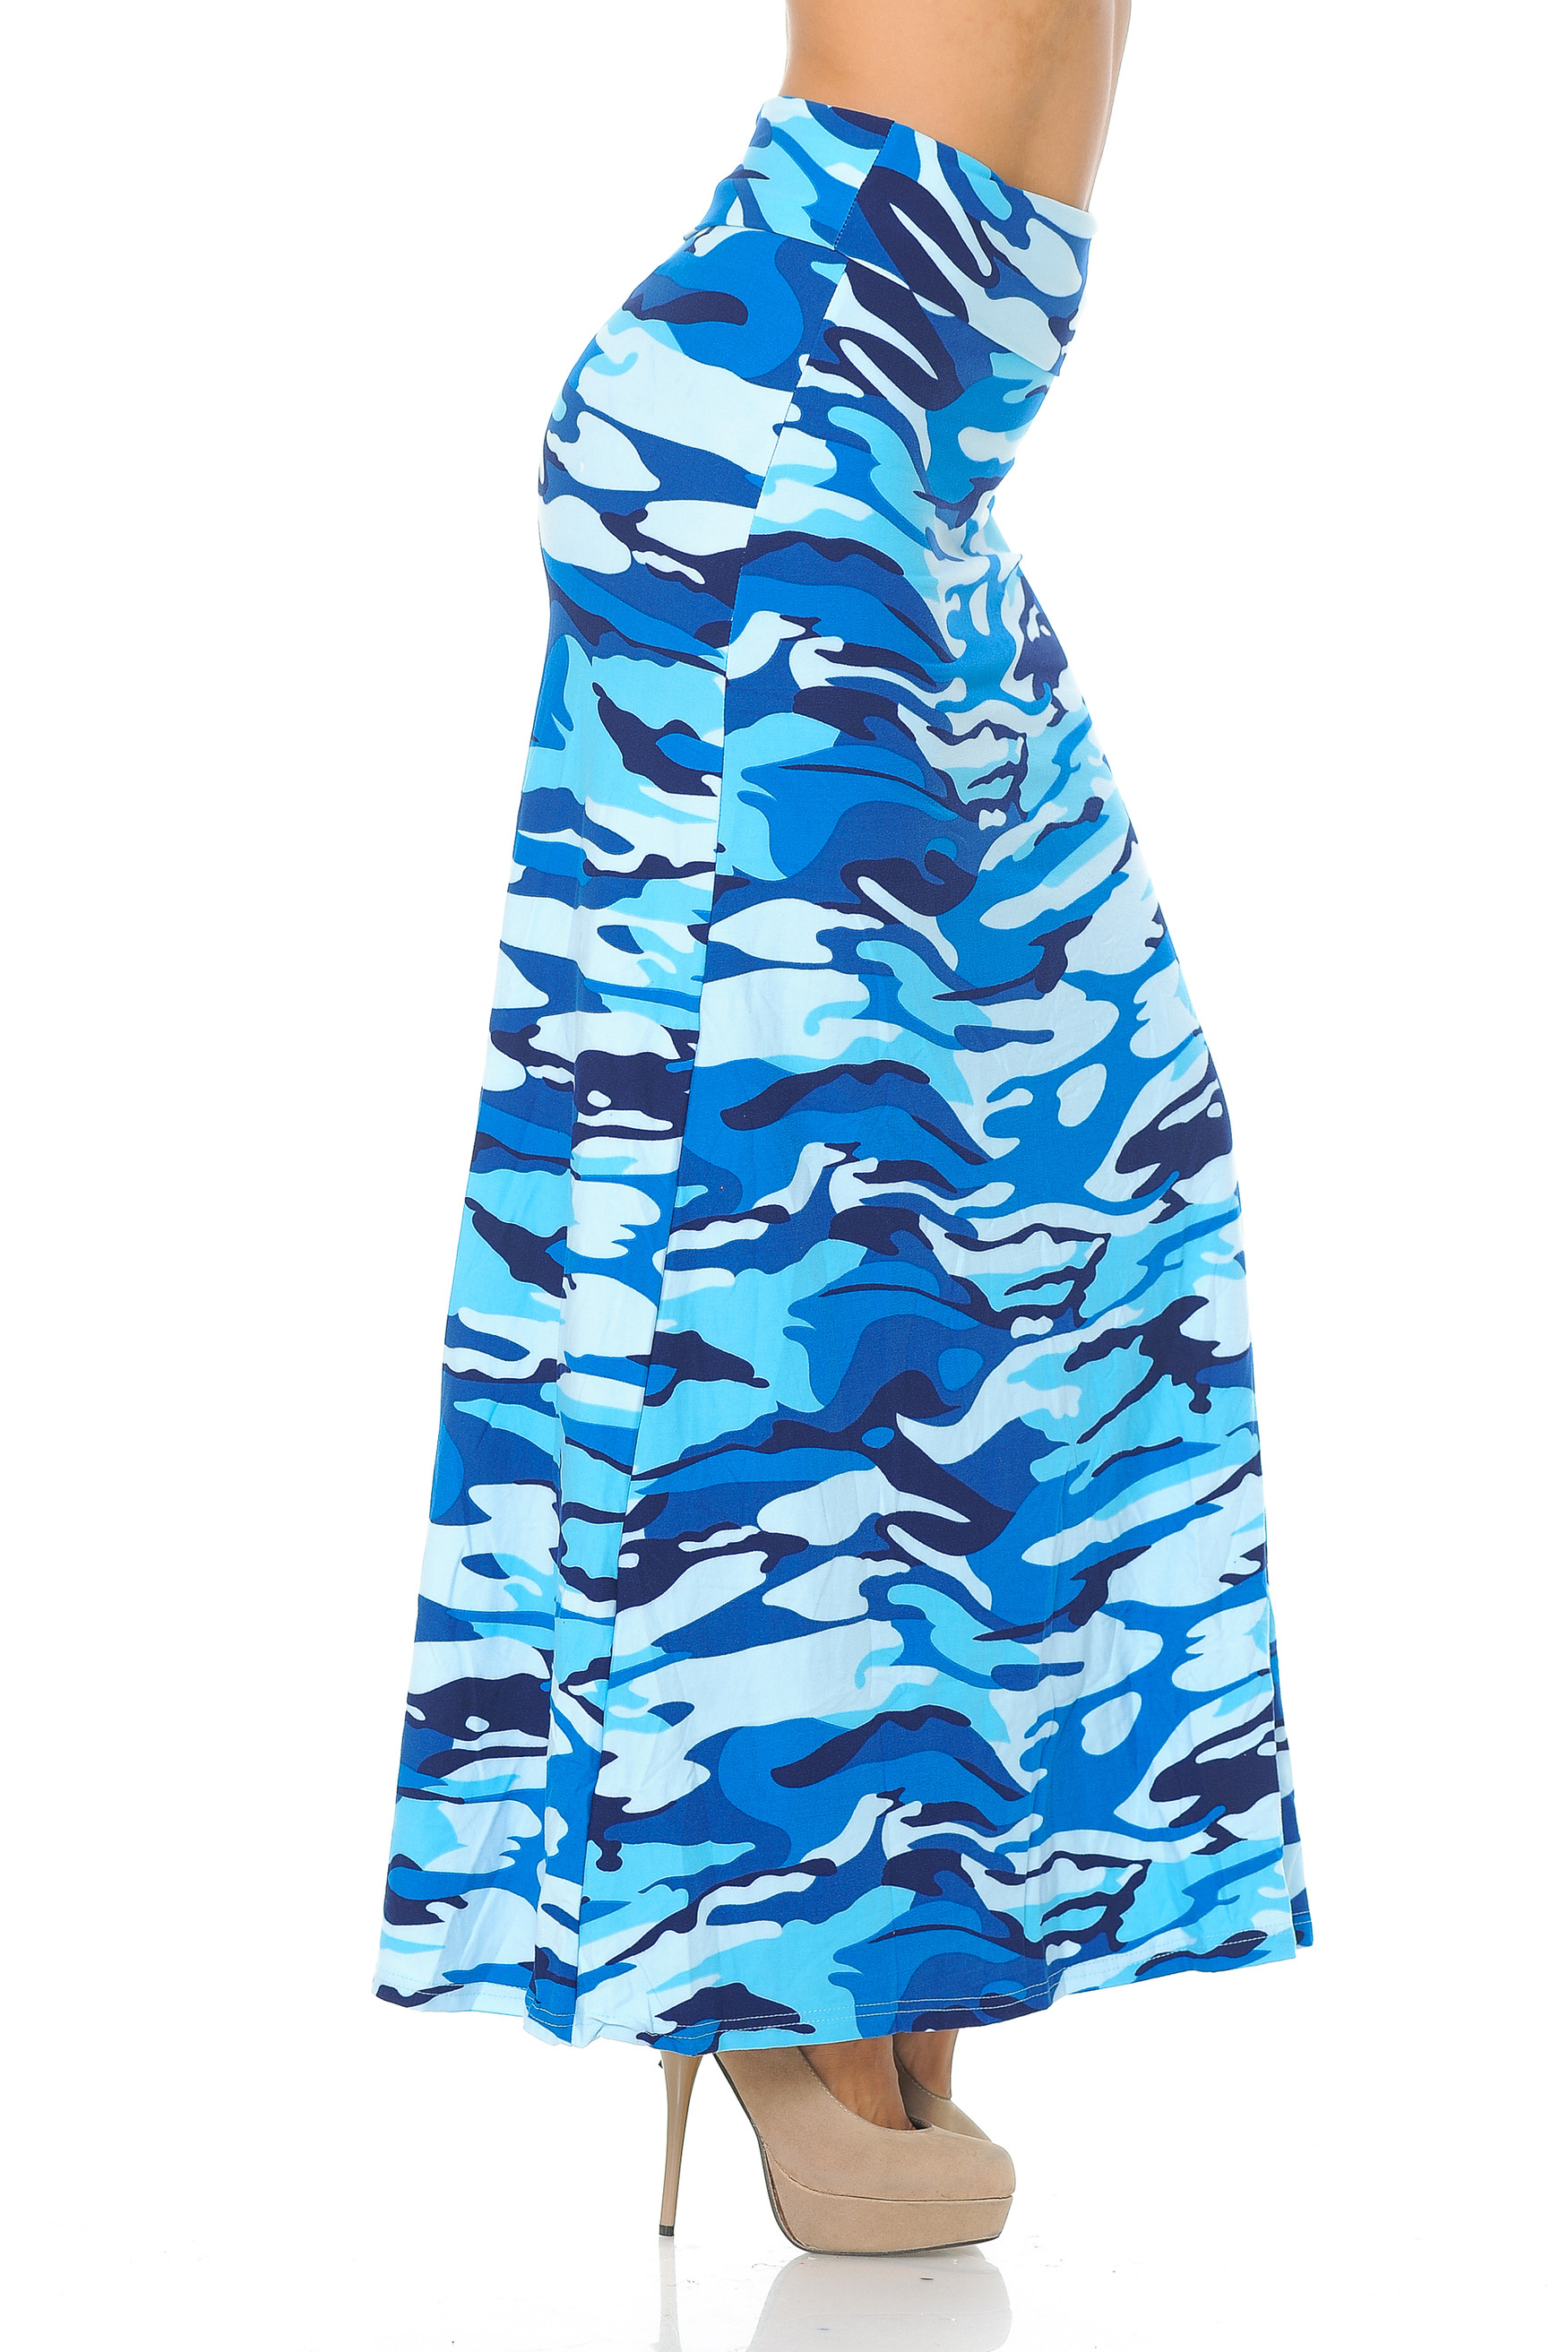 Blue Camouflage Plus Size Buttery Soft Maxi Skirt